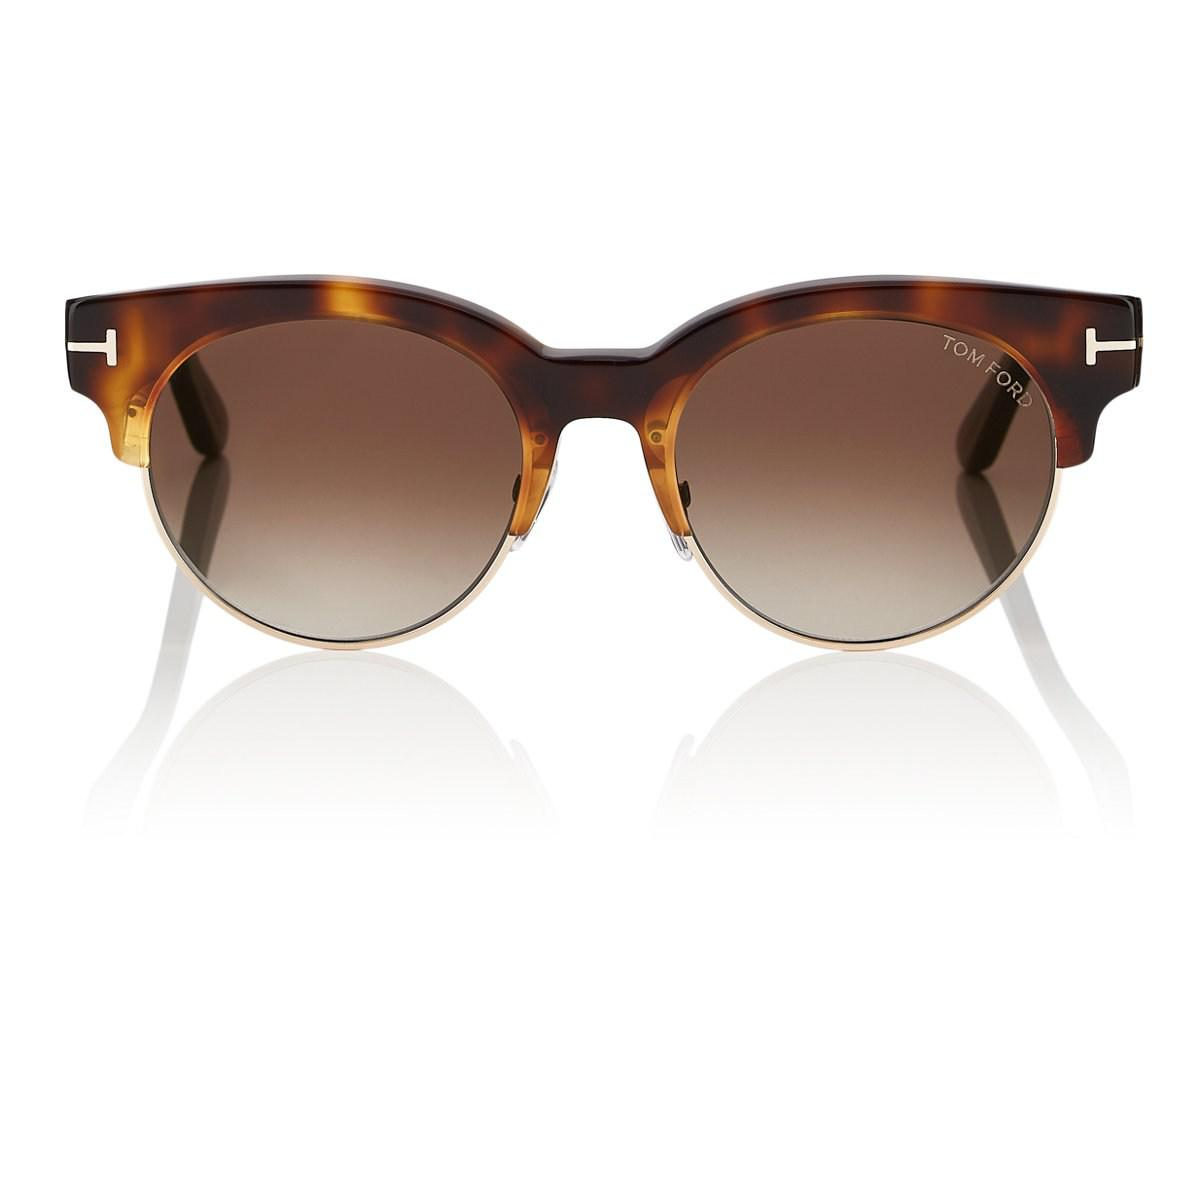 763ce335c53d Lyst - Tom Ford Henri Sunglasses in Brown for Men